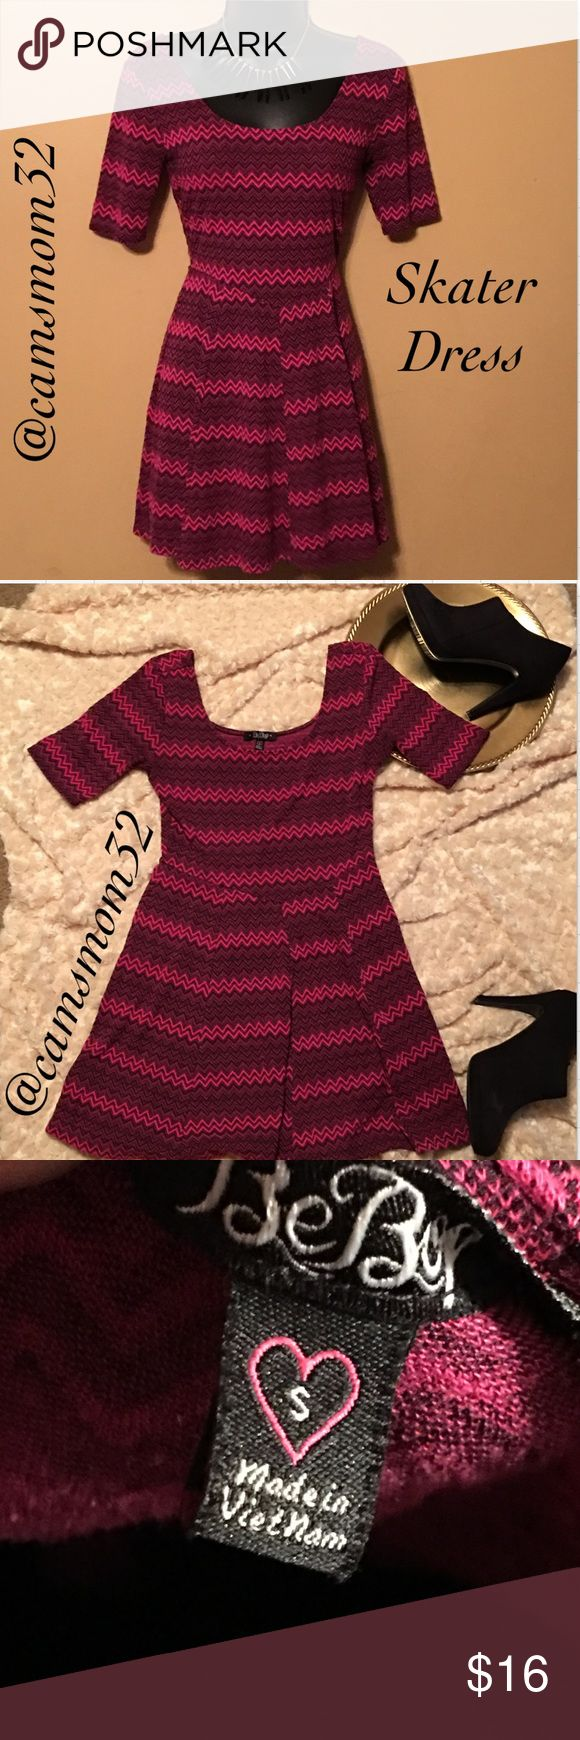 Cute skater dress Like new condition, size small. Bundle more items and save more. Thanks for checking out my listing😍 Dresses